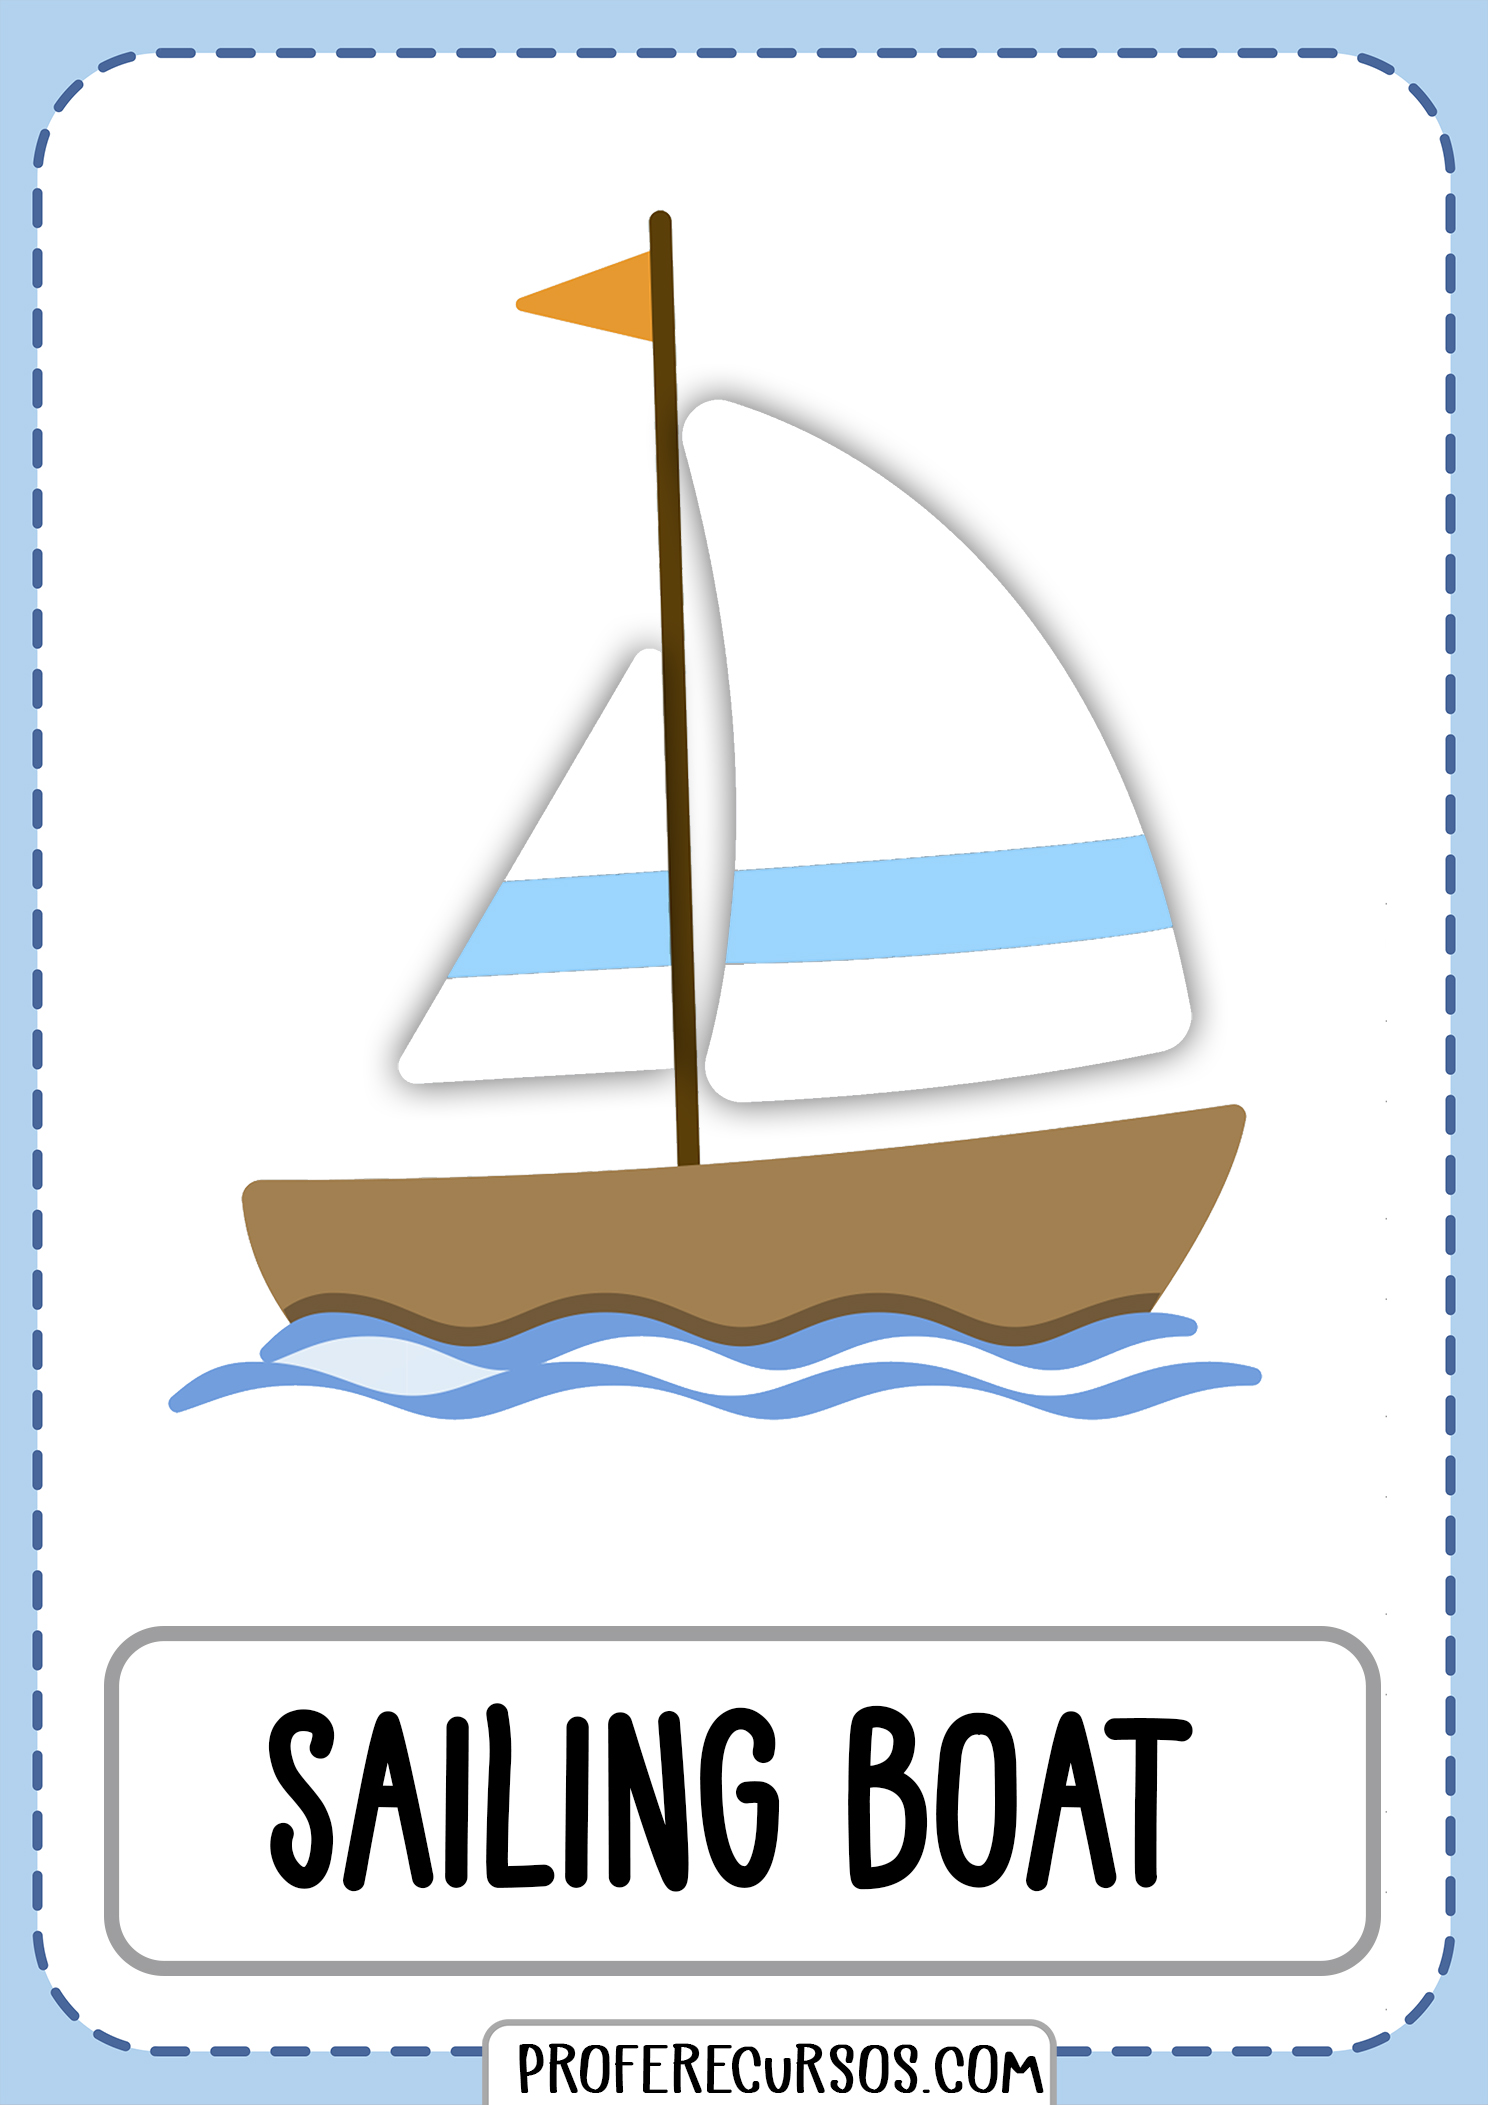 Means-of-transport-vocabulary-sailing-boat